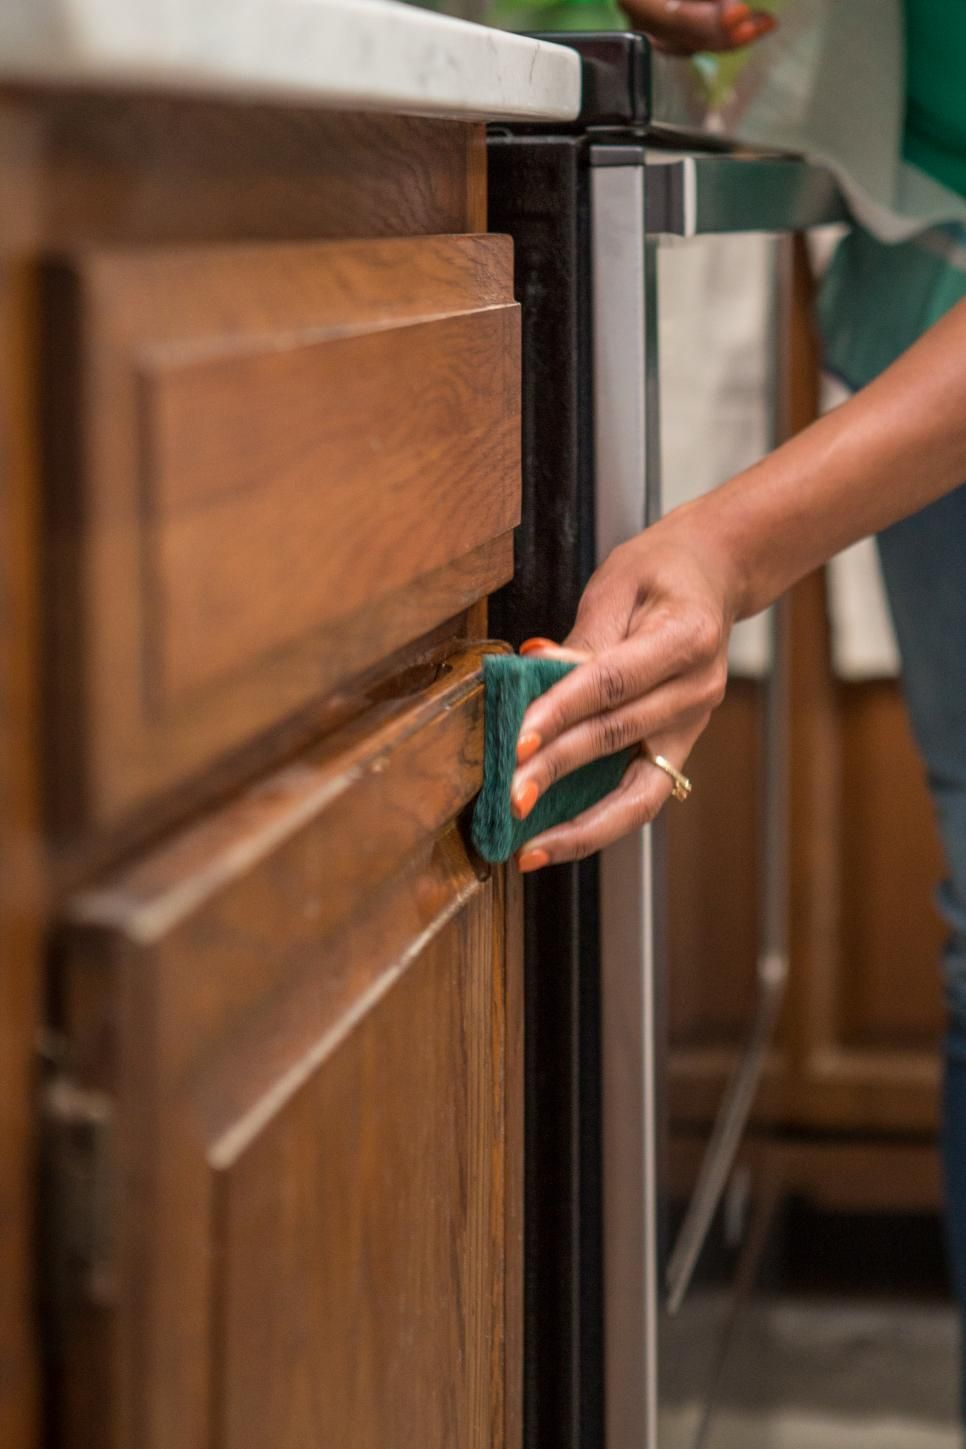 Darken Cabinets Without Stripping The Existing Finish Diy Furniture Home Improvement Projects Diy Home Improvement